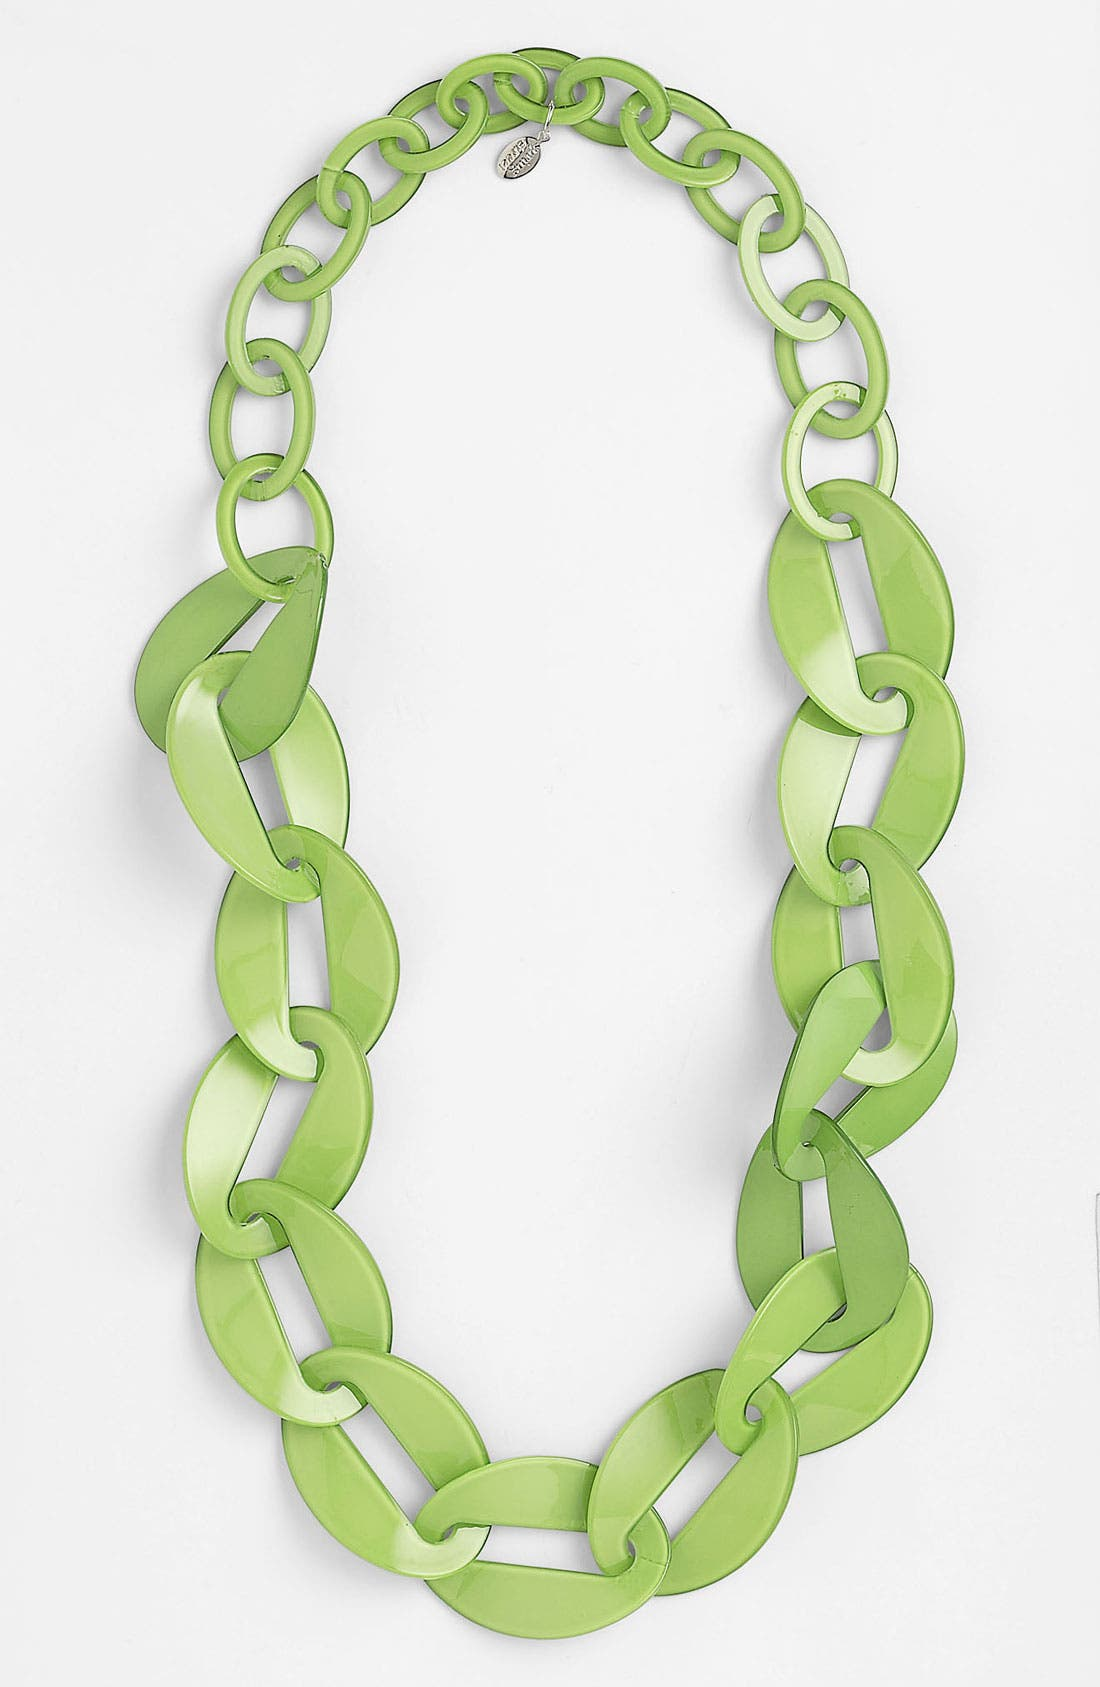 Alternate Image 1 Selected - Spring Street 'Big Links' Necklace (Nordstrom Exclusive)